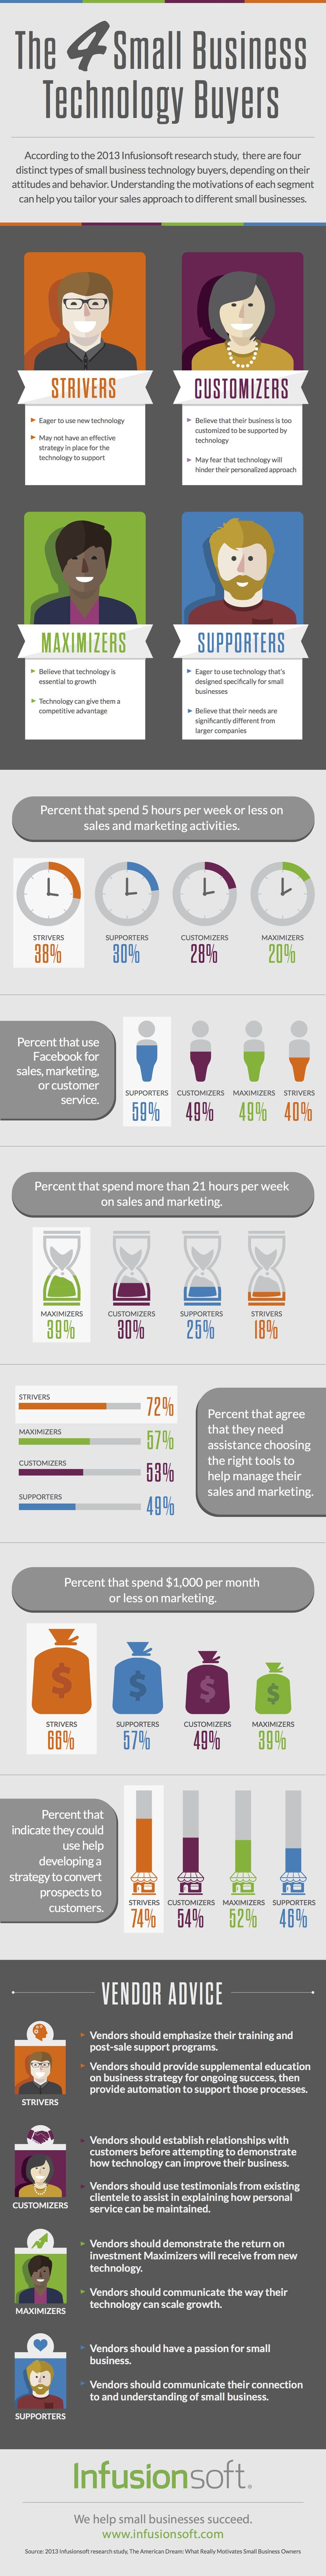 The 4 Small Business Technology Buyers #Infographic #SmallBusiness #Technology